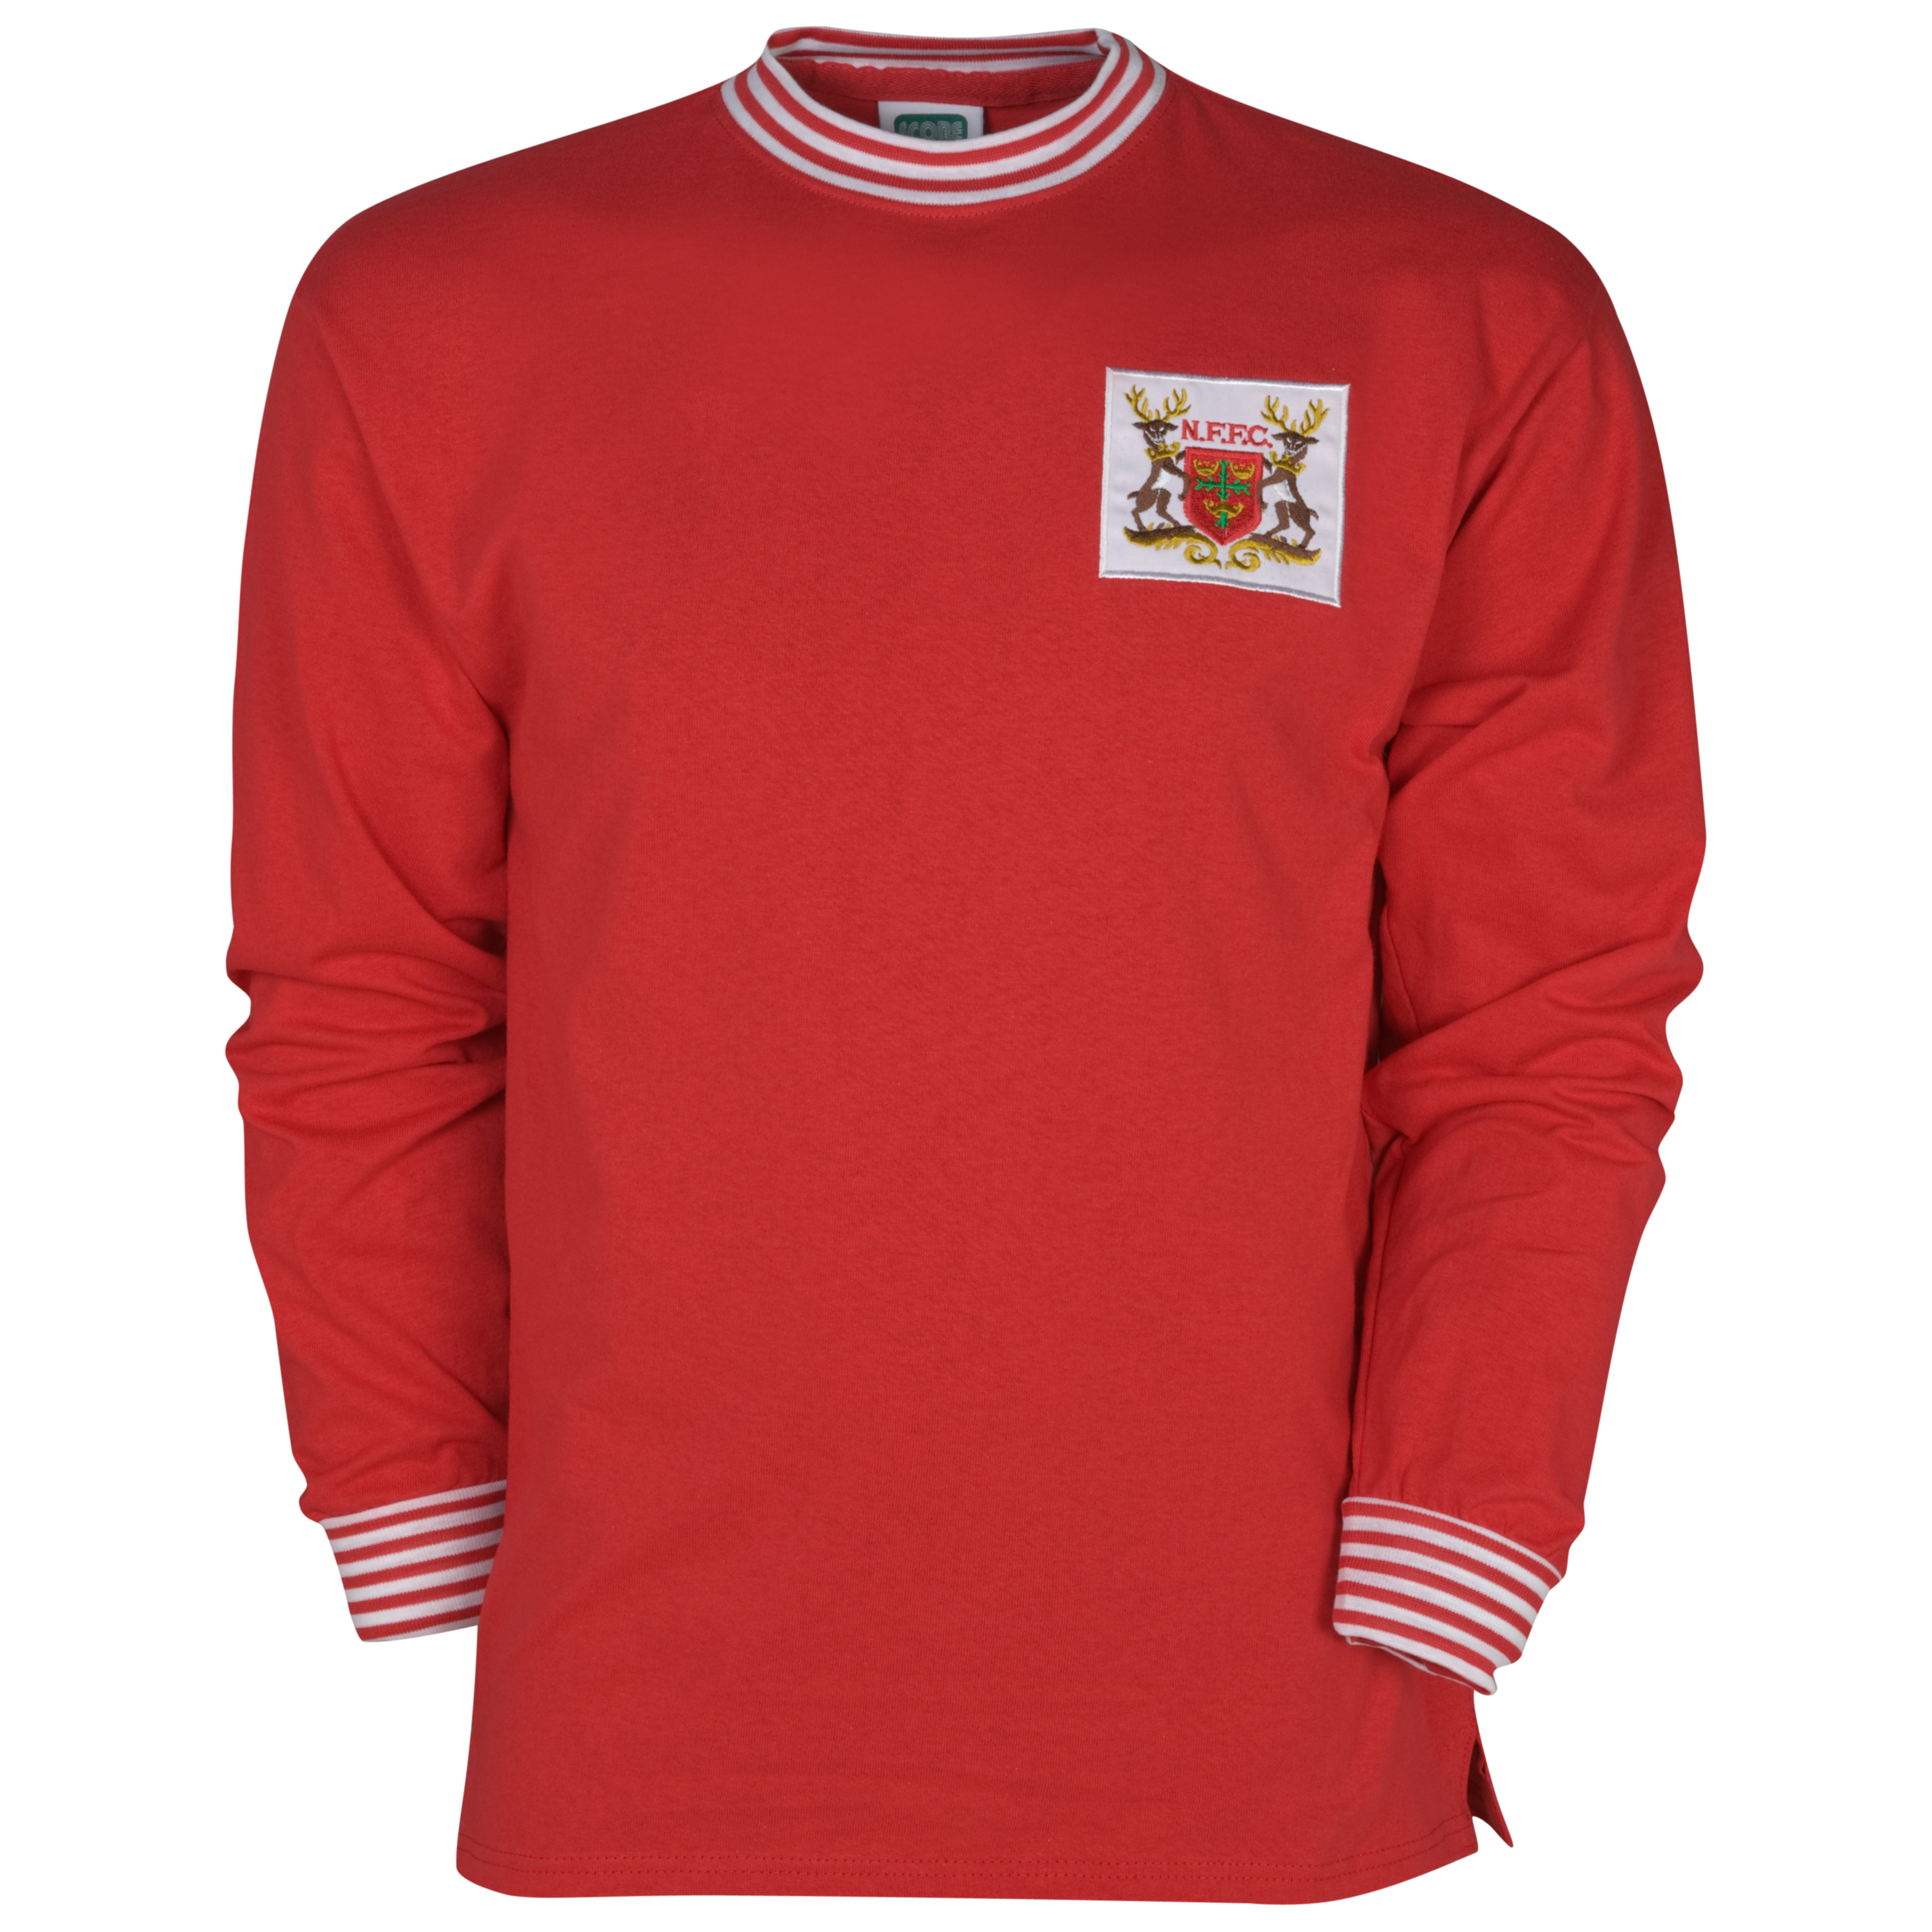 Nottingham Forest 1966 Home Shirt Long Sleeved - Red